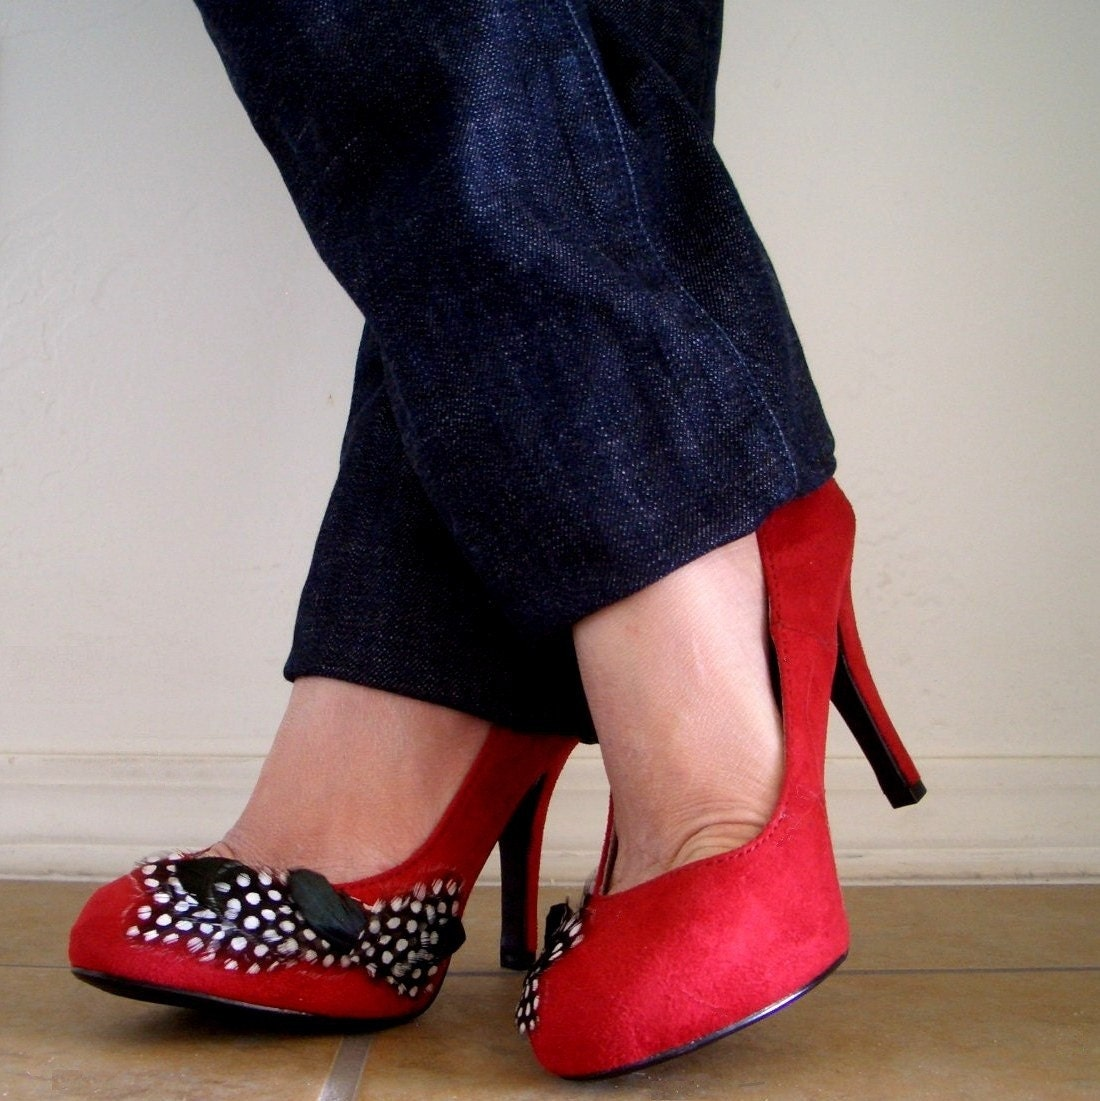 Red & Black Shoes